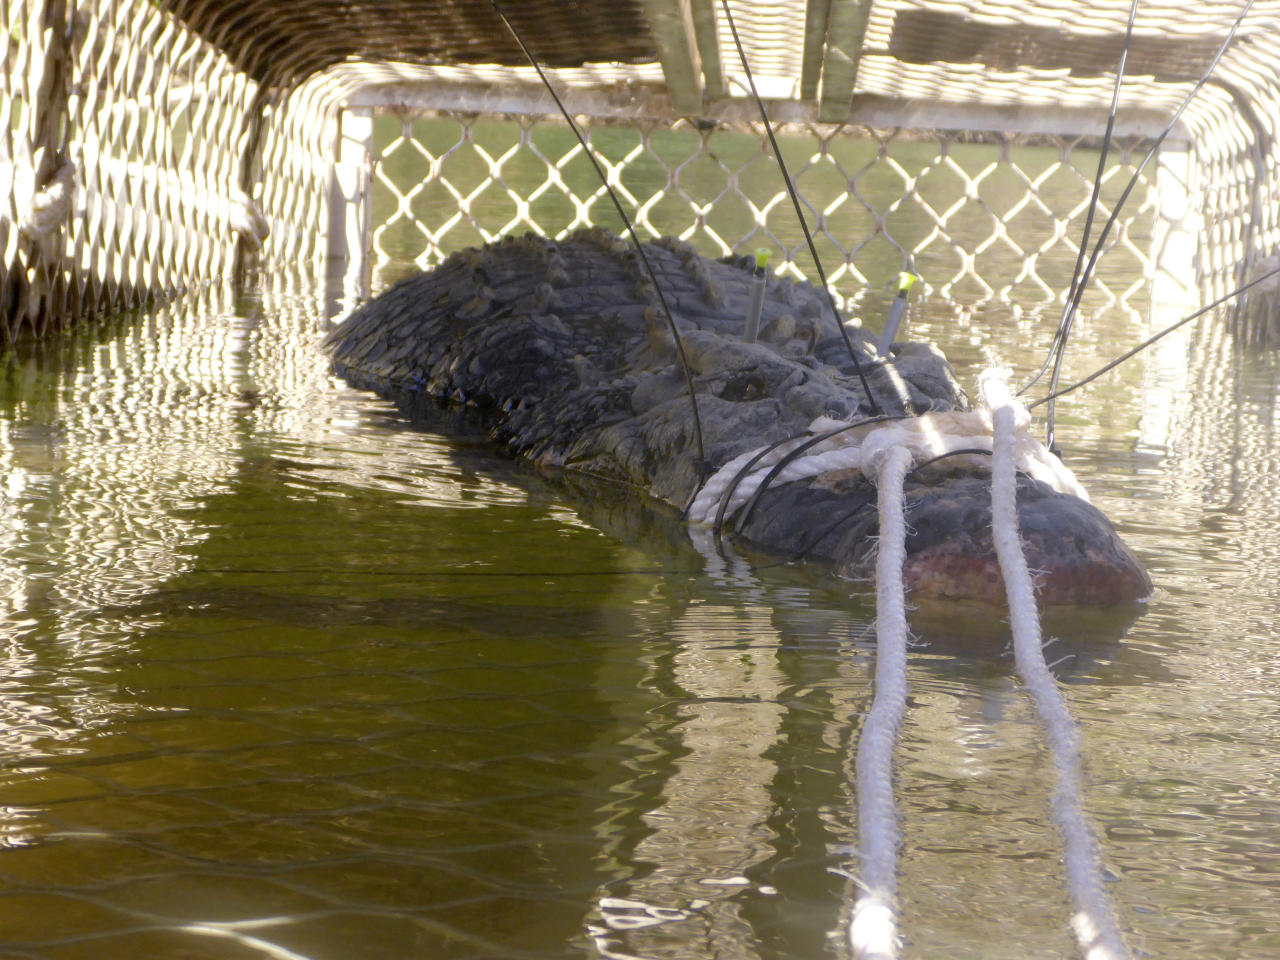 In this Monday, July 9, 2018, photo provided by the Northern Territory Department of Tourism and Culture, a large crocodile is captured in a trap near Katherine, Australia. Northern Territory Parks and Wildlife said in a statement on Tuesday, July 10, 2018, it had trapped the 600-kilogram (1,300-pound) reptile only 30 kilometers (19 miles) downstream from Katherine Gorge, a major tourist attraction outside the Northern Territory town of Katherine. (NT Department of Tourism and Culture via AP)